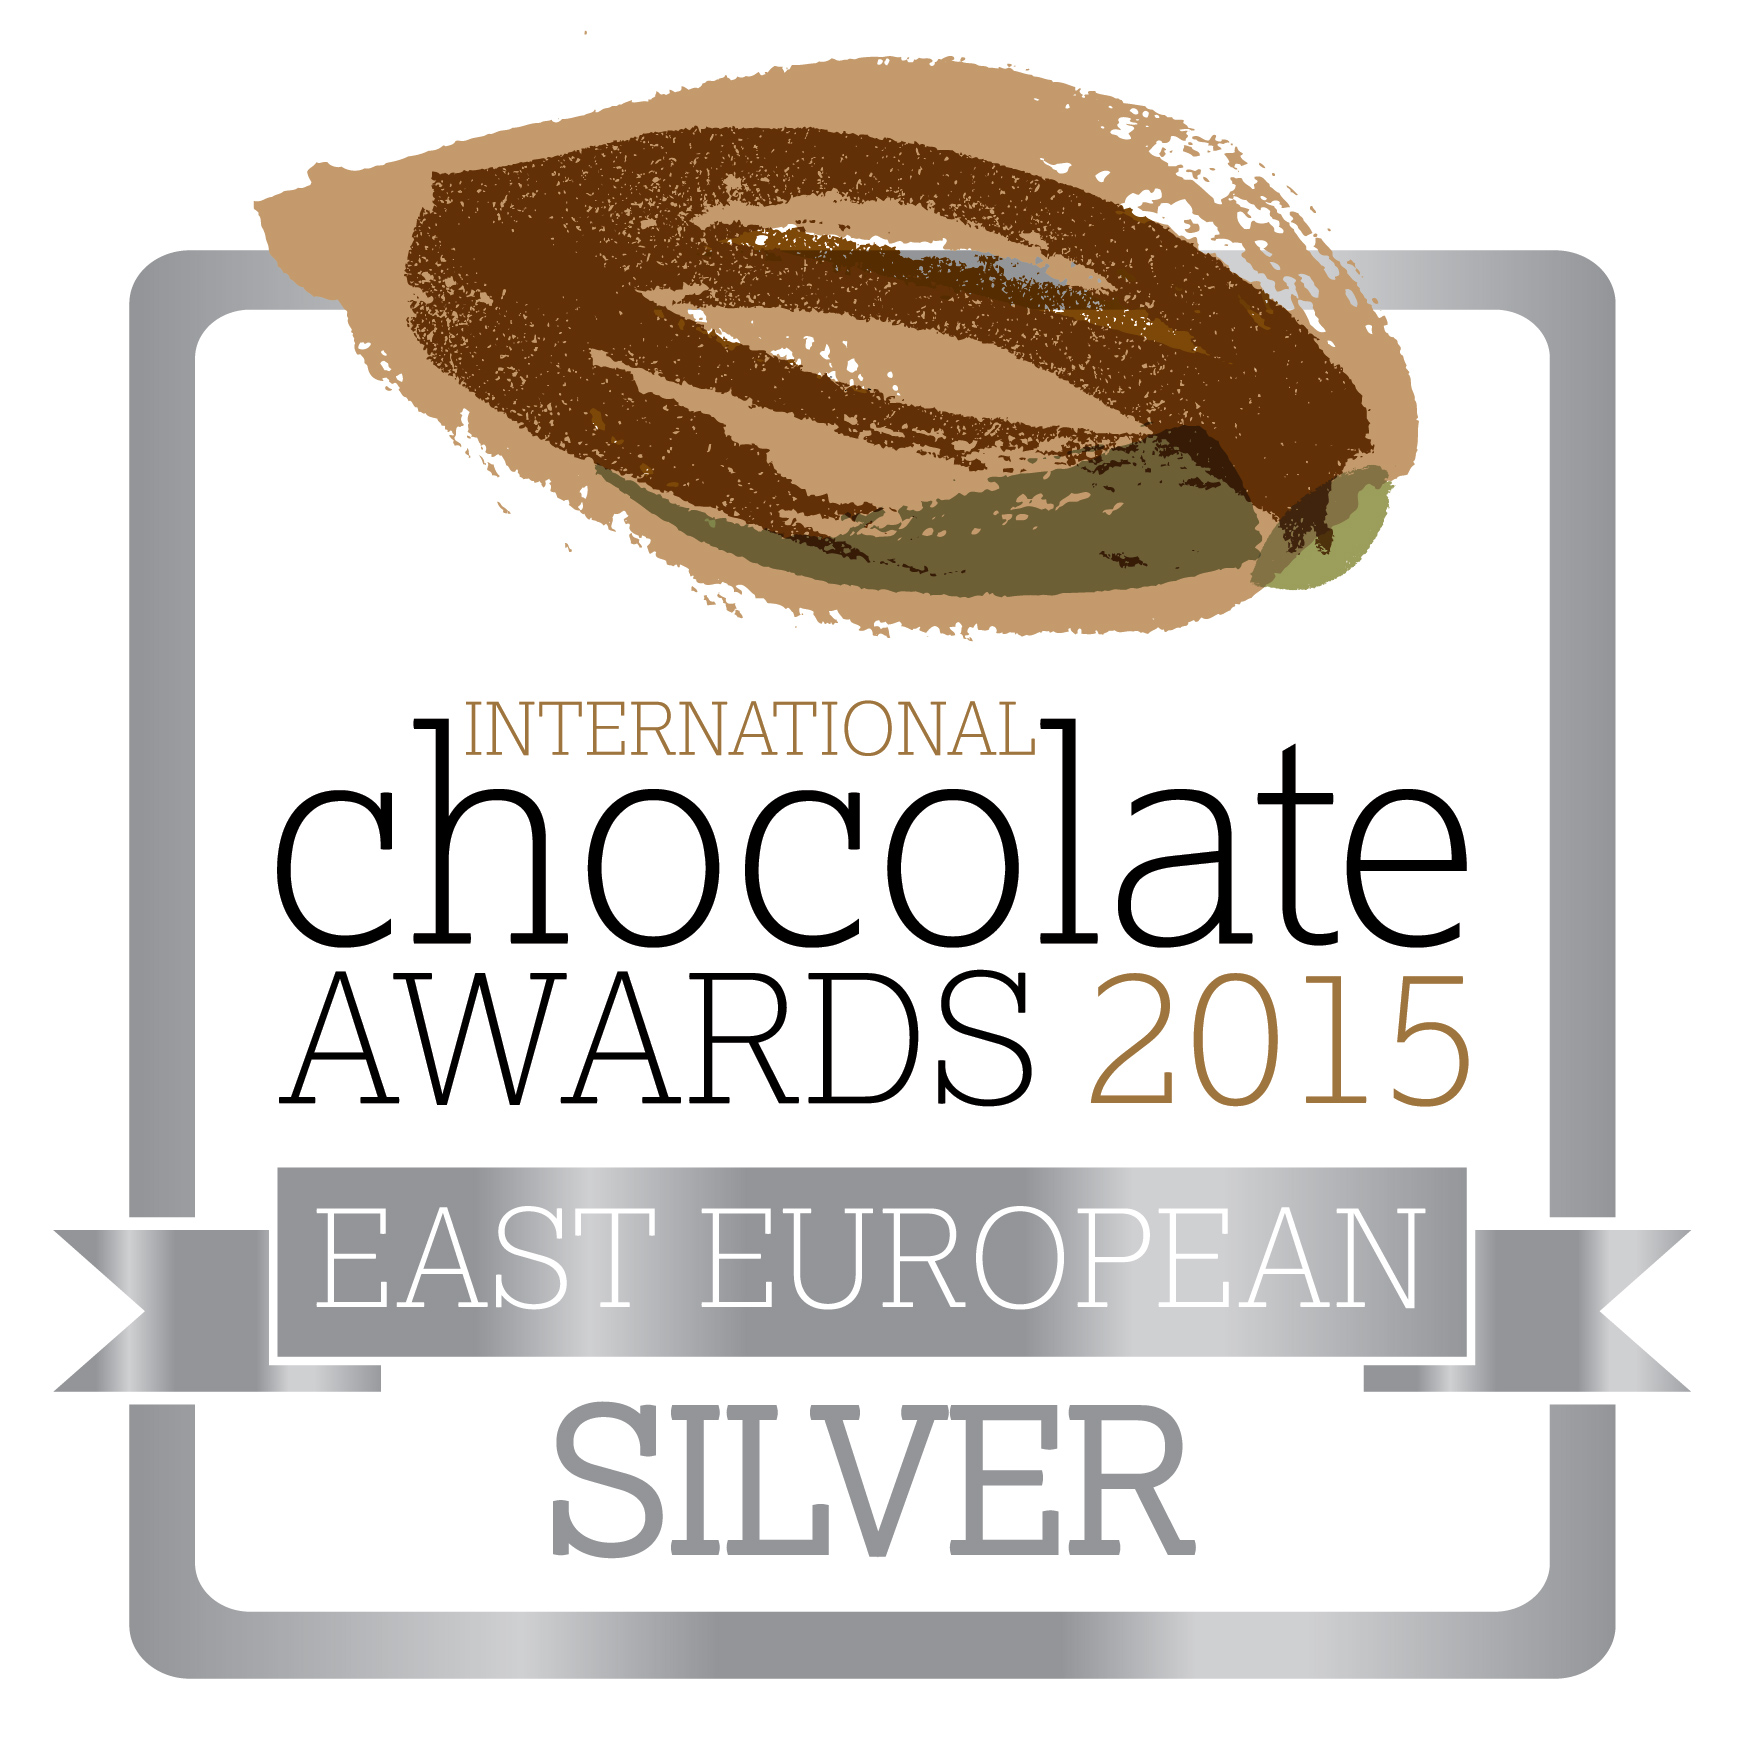 International Chocolate Awards 2015 - Silver - East European RGB - web